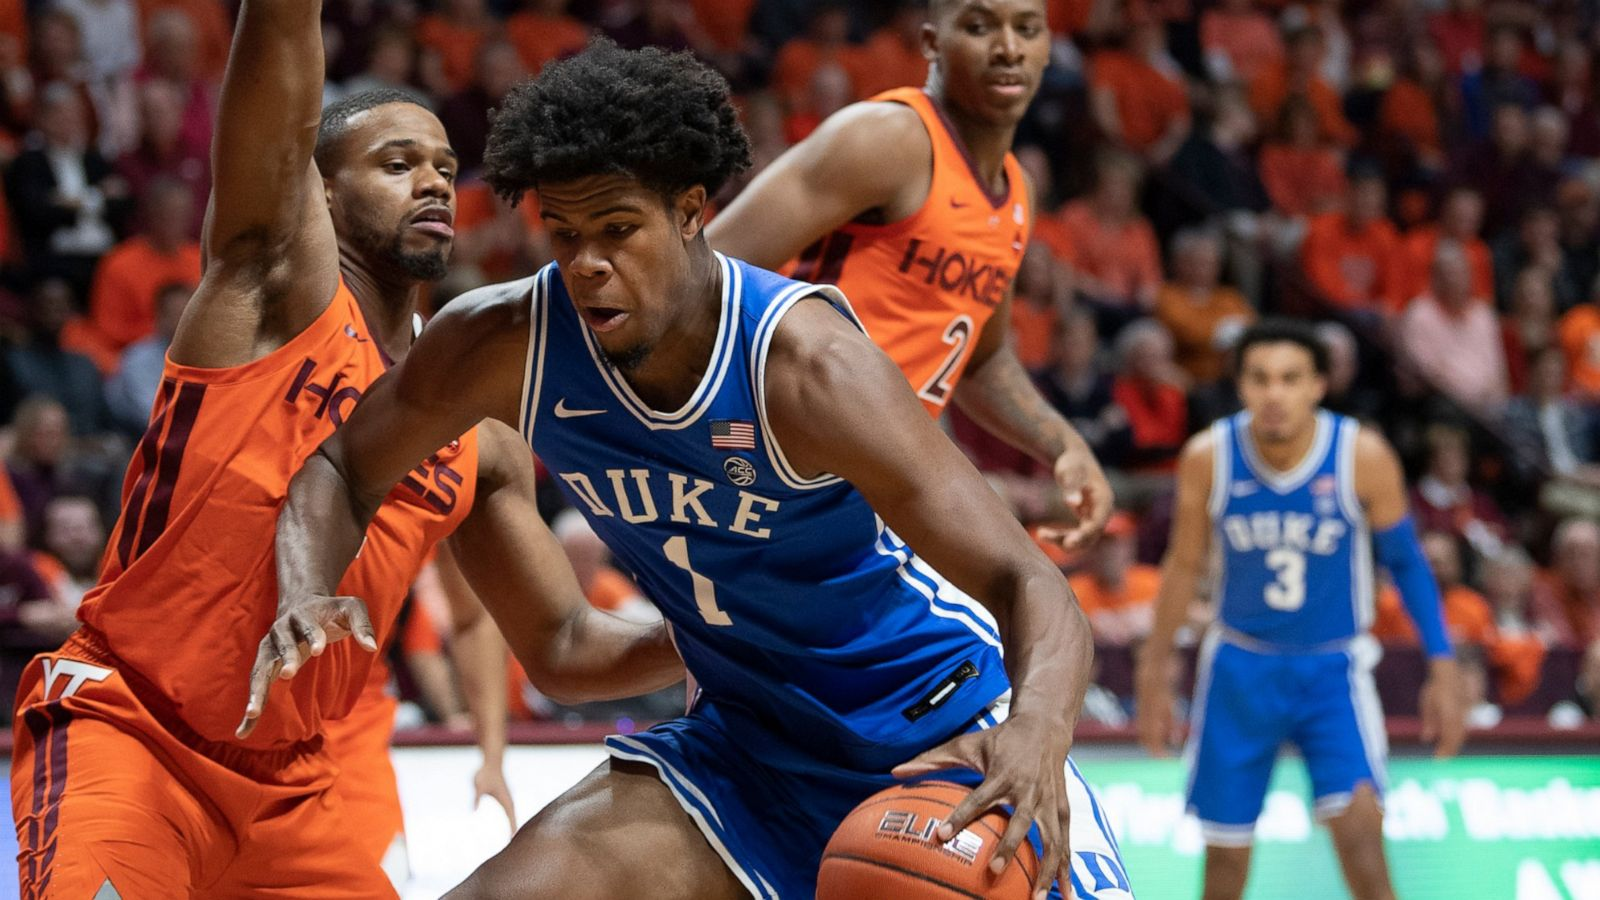 Duke Stumbles but Recovers at Virginia Tech 77-63; Tre Jones Scores 15; Duke Scores 35 Bench Points